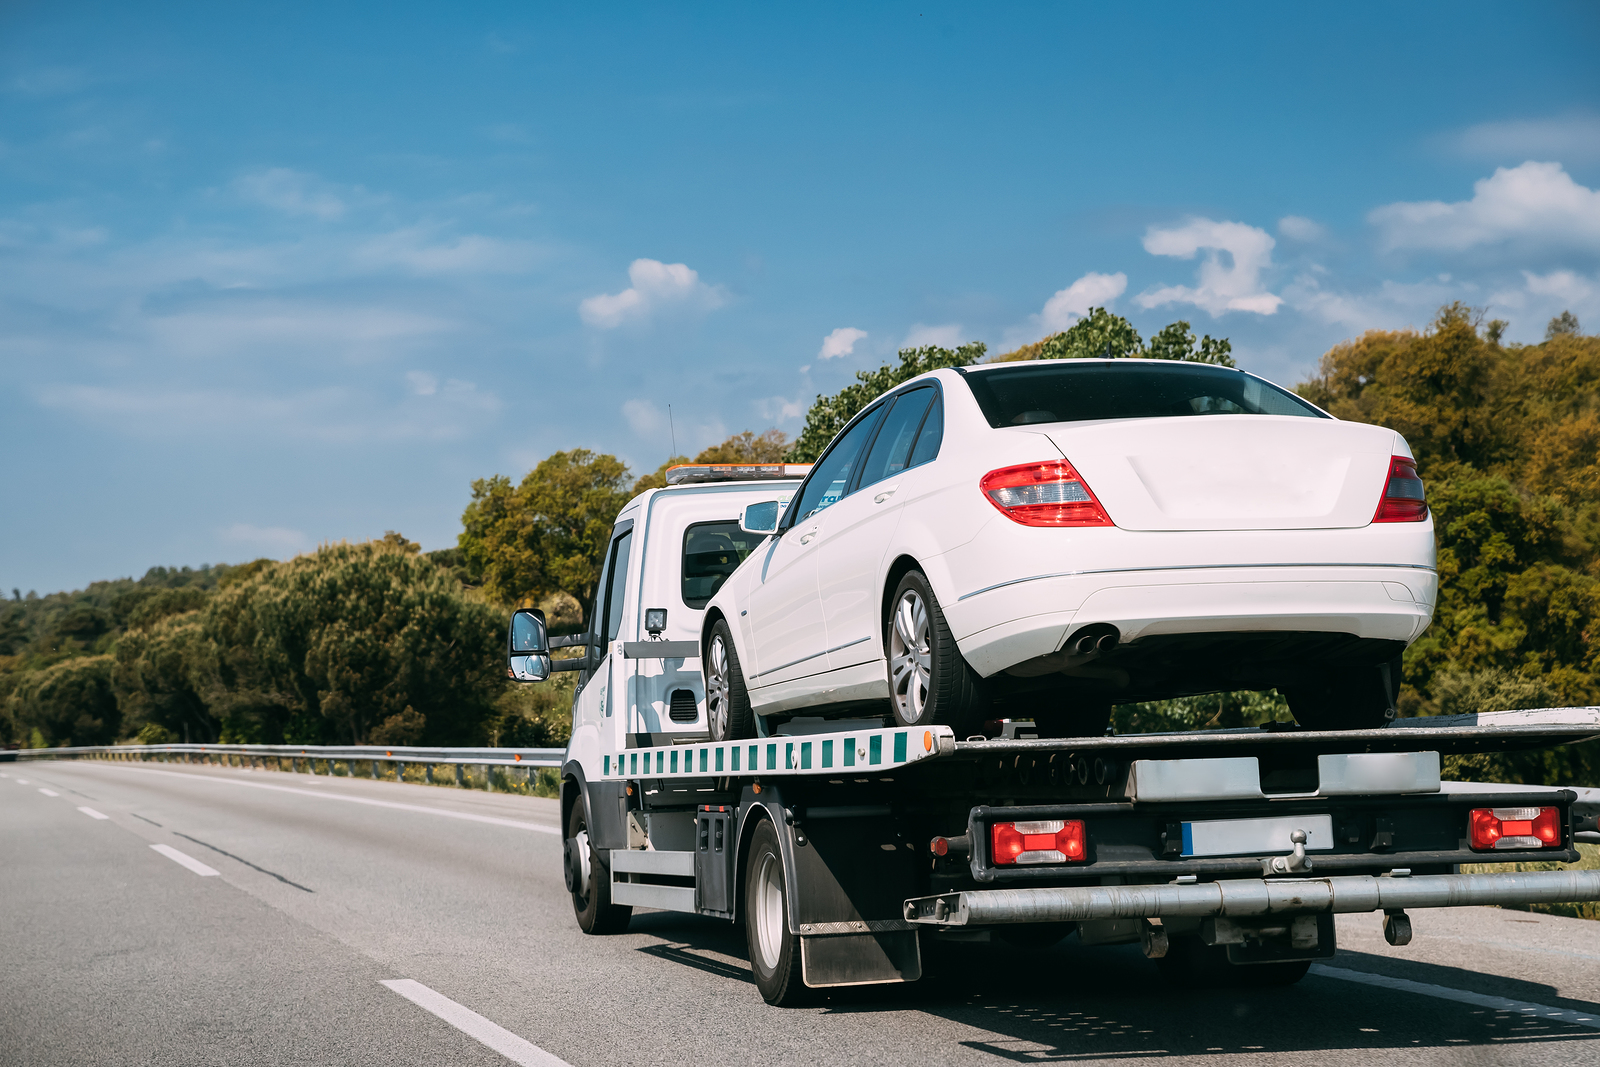 How To Choose the Best Highland Park Towing Services